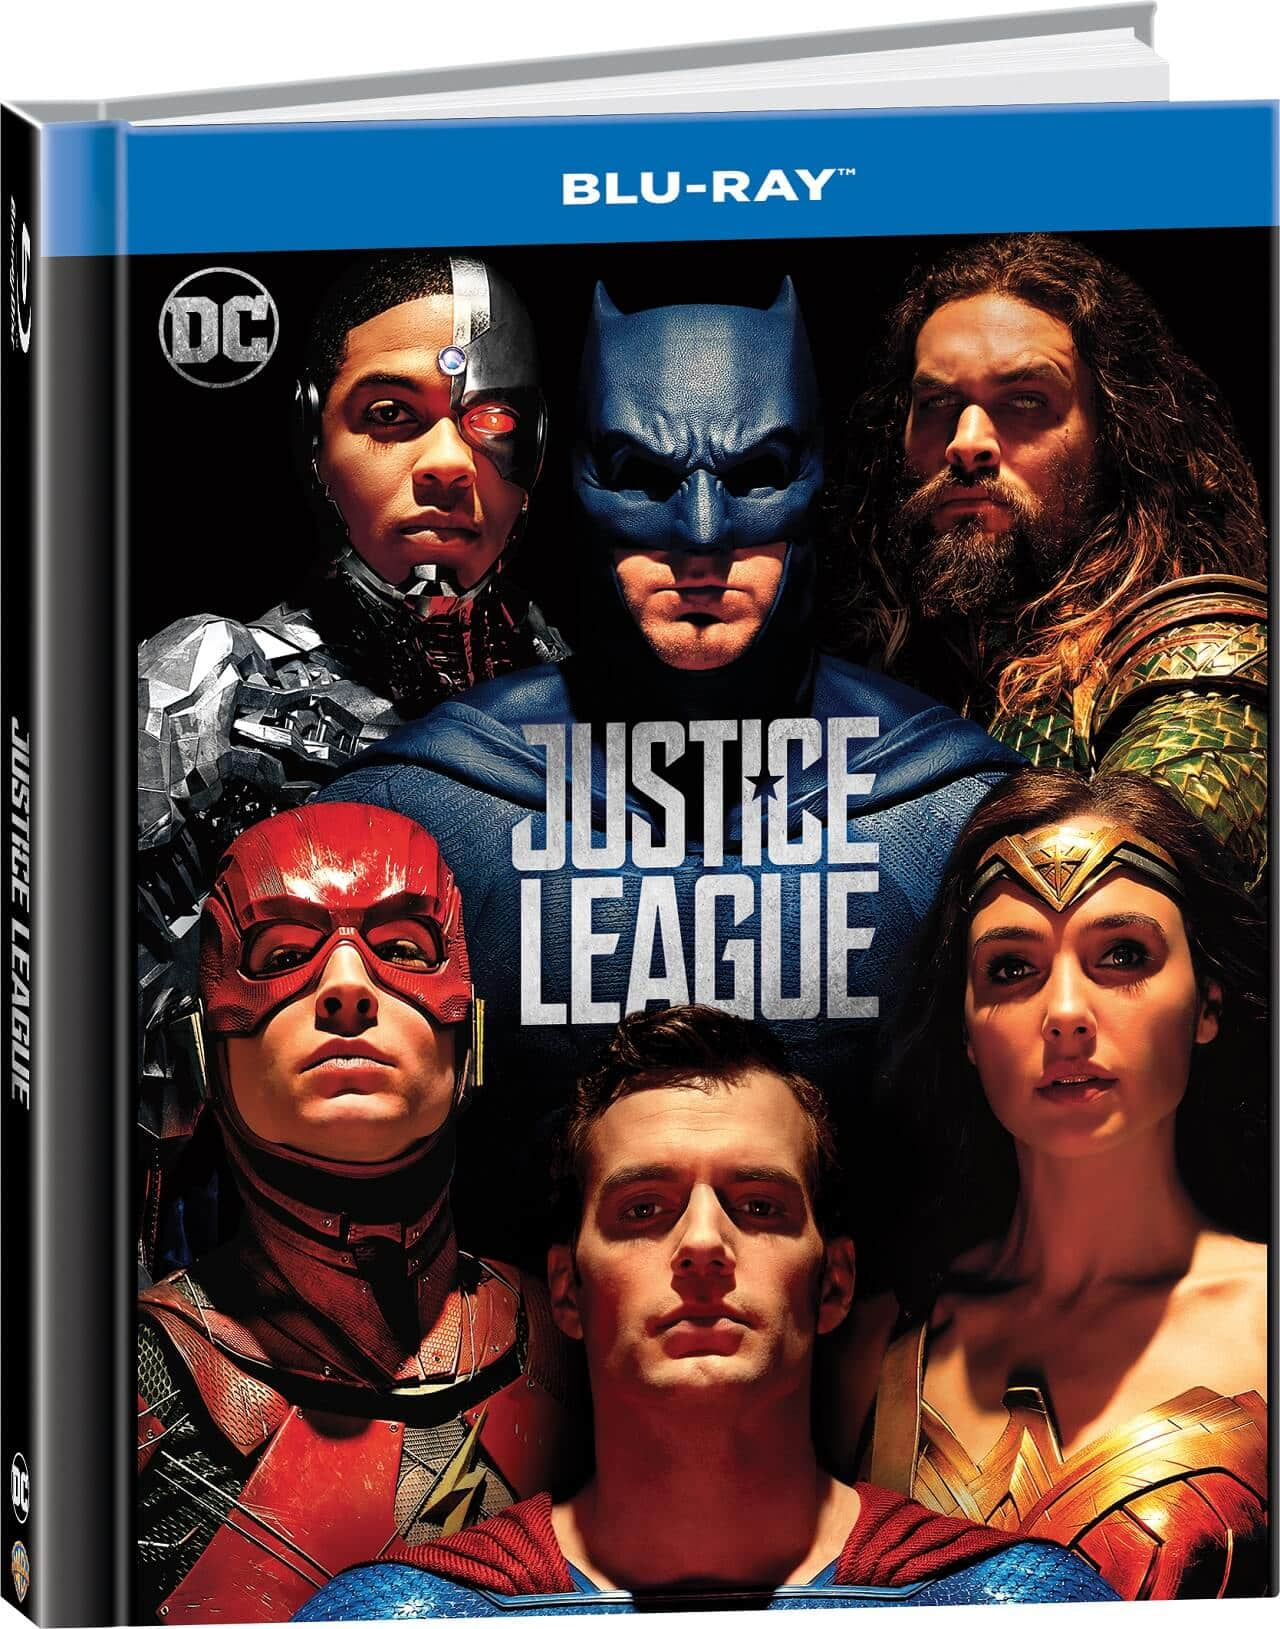 Justice League Cinematographe.it